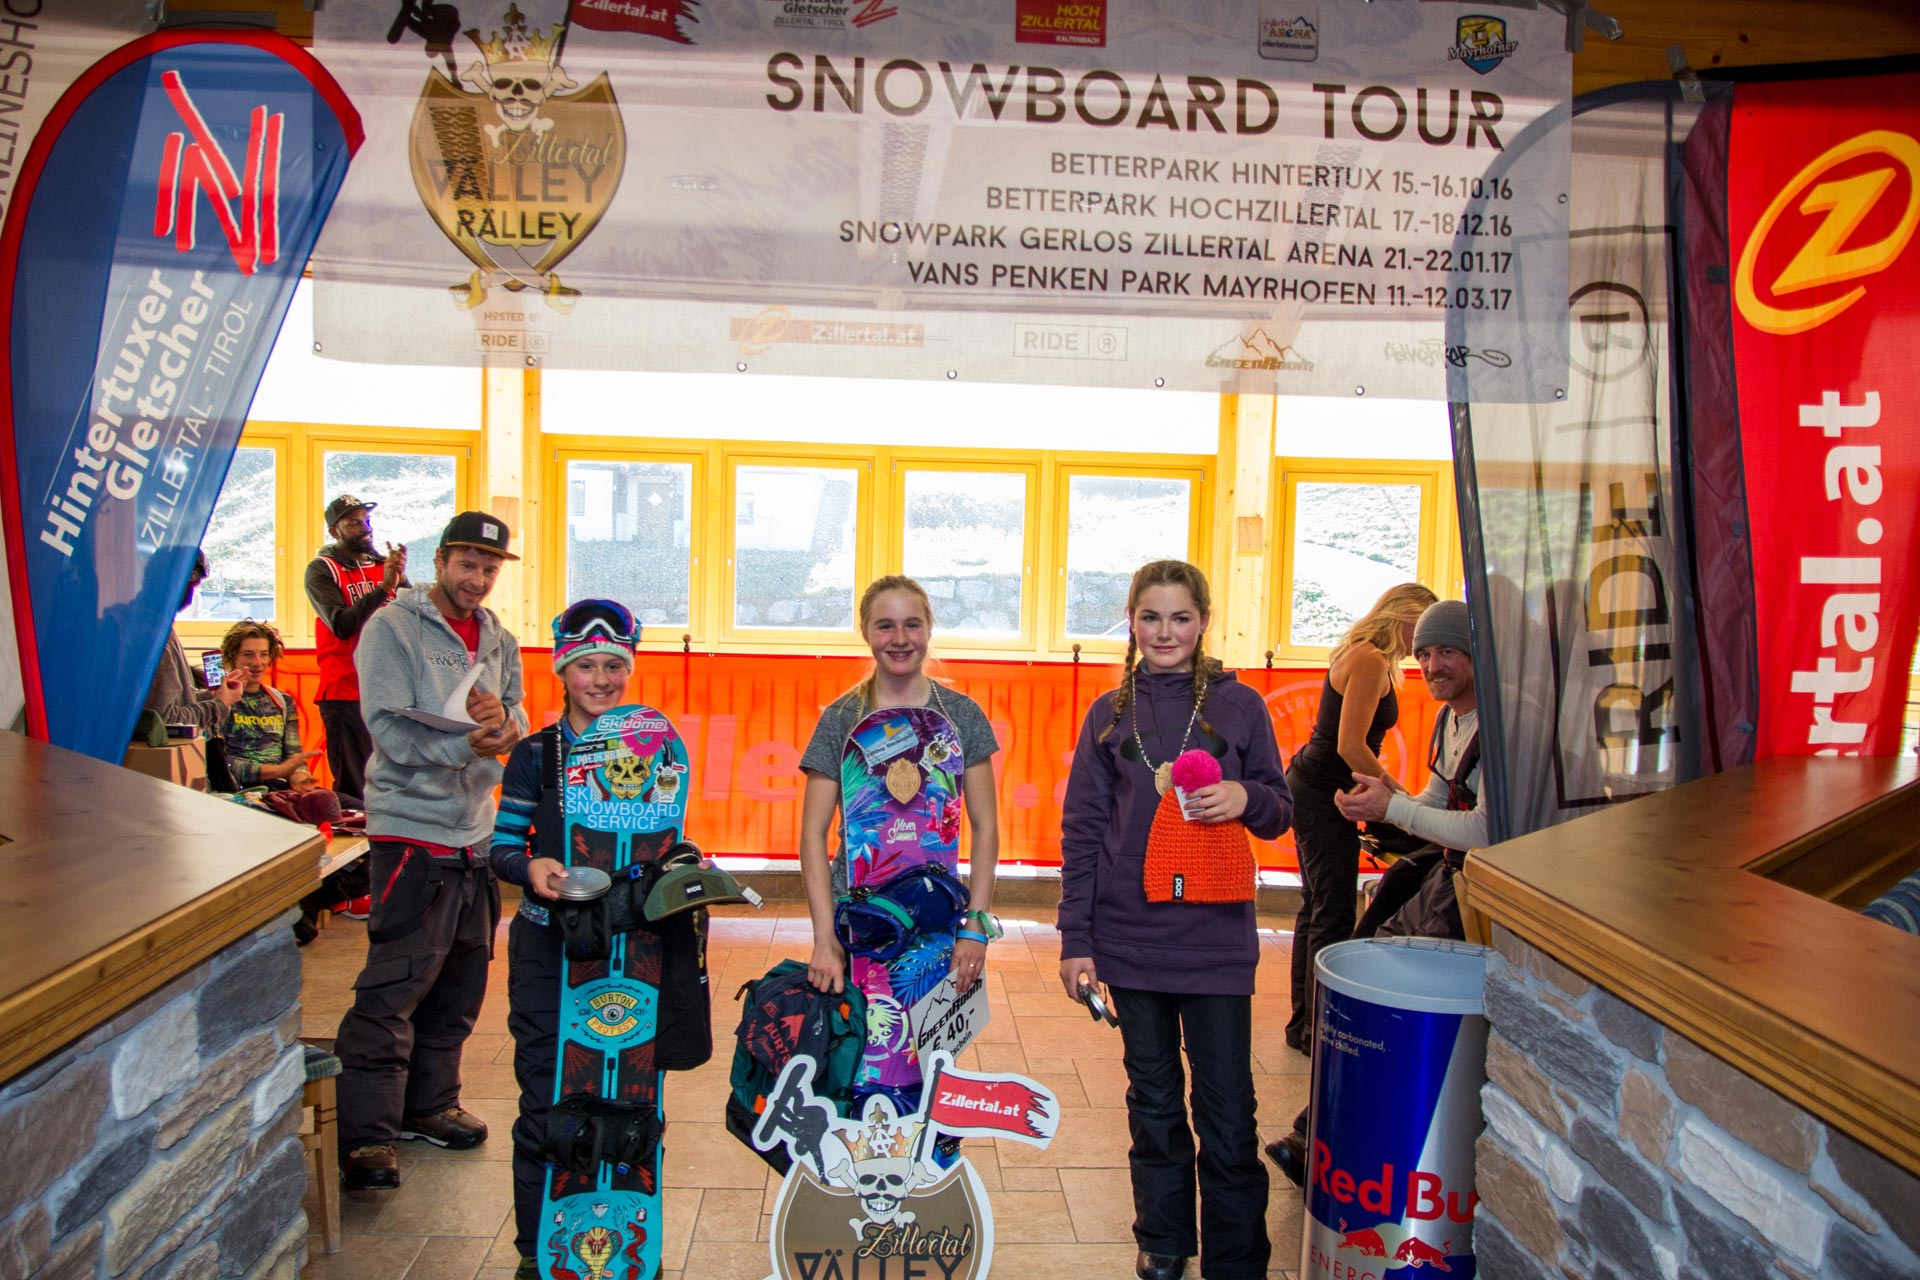 Top 3 Groms Girls: Evy Poppe, Melissa Peperkamp und Luca Mal lane Hopkins (v.l.n.r.) - Foto: Albert Binnekade